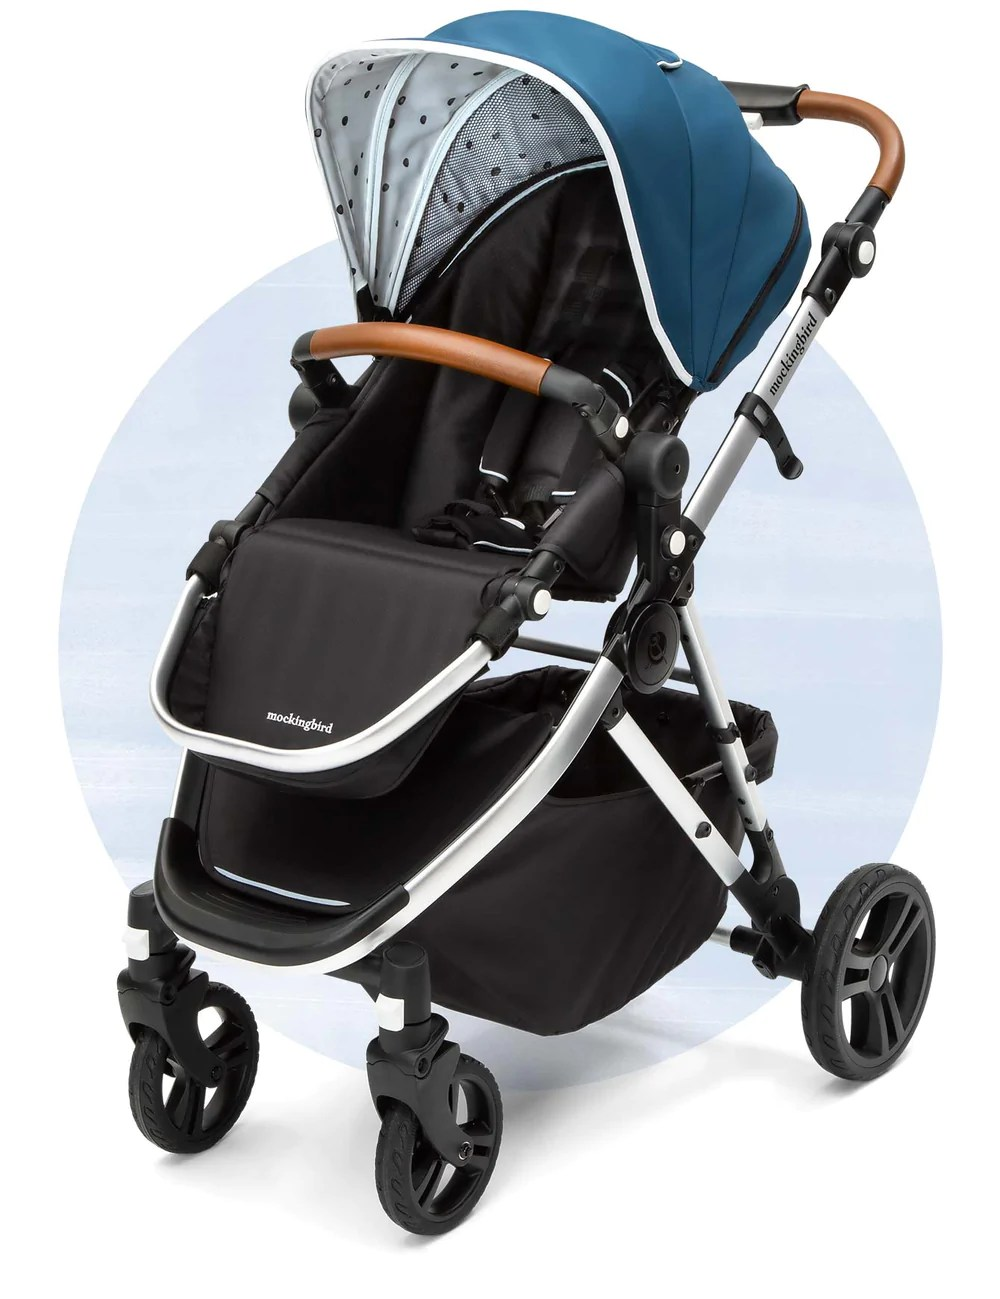 Baby Pushchair Near Me Mockingbird Stylish Affordable Baby Strollers And Accessories